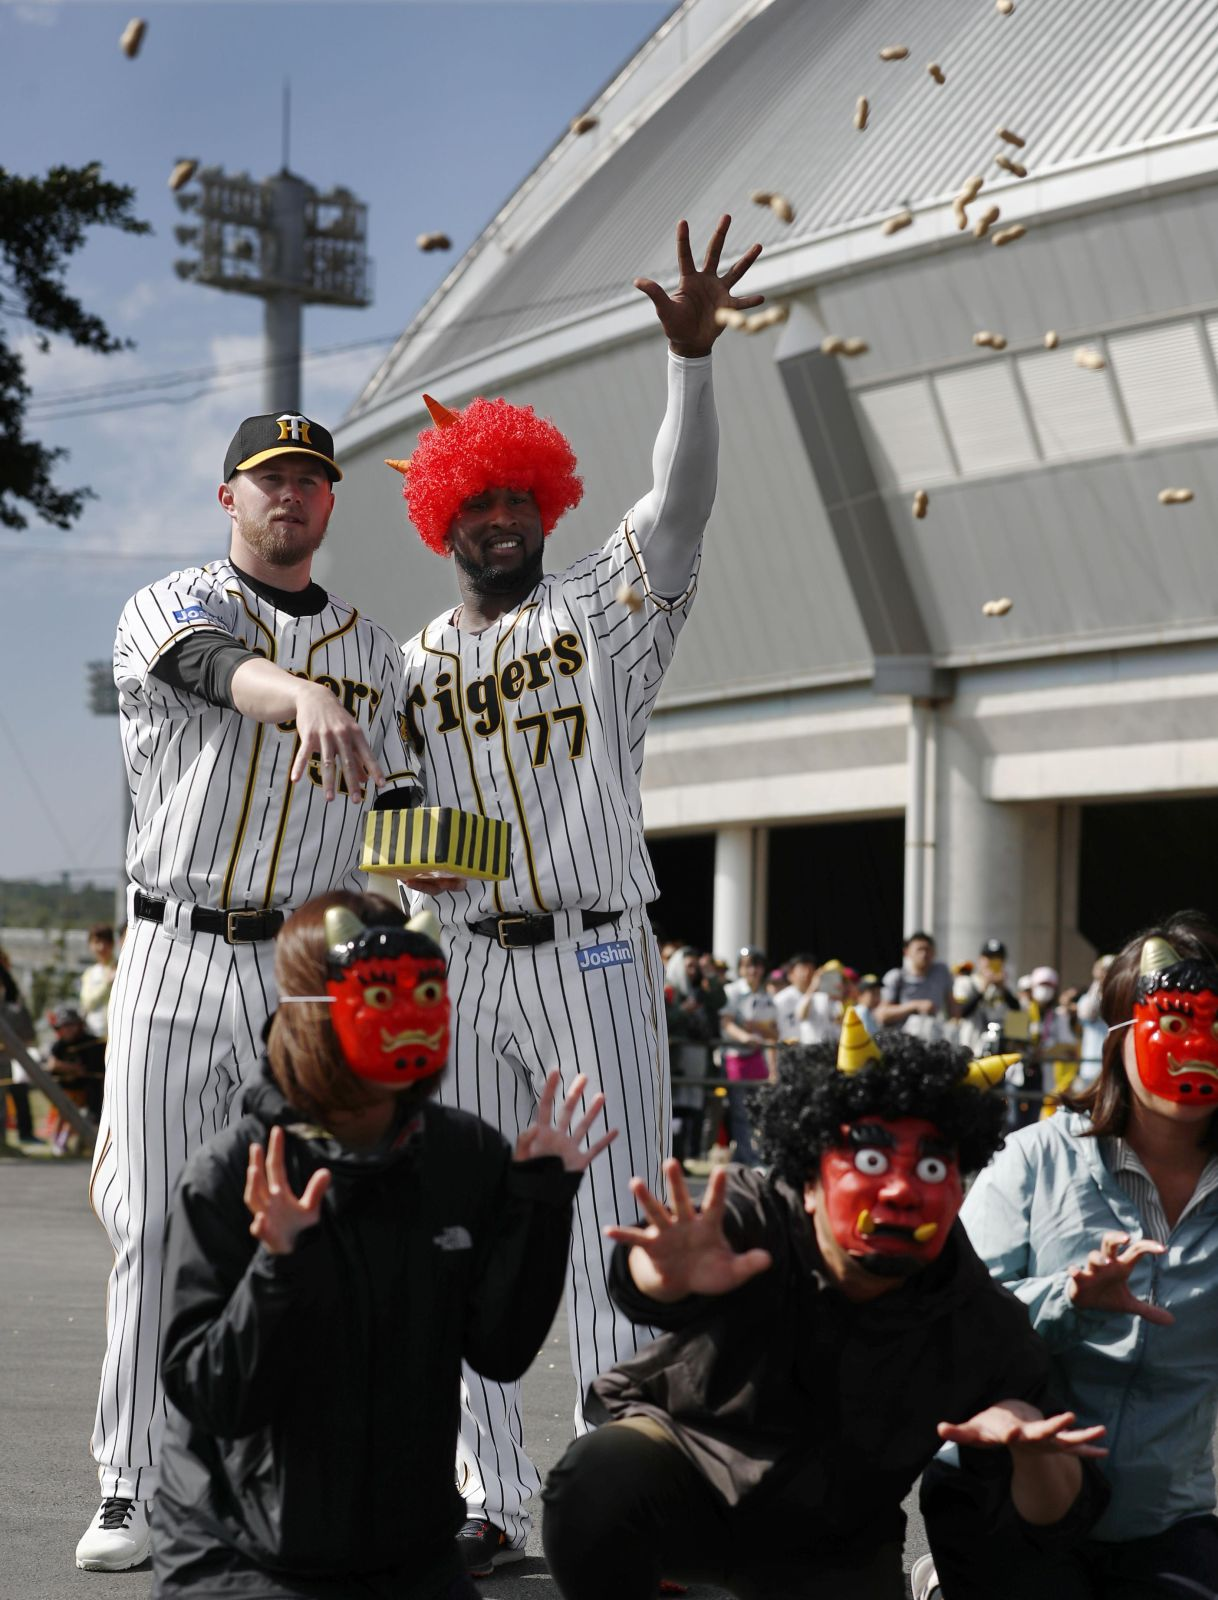 Wasted Food, Leftover Meals: Japan Has to Chase Off the 'Demon of Setsubun'